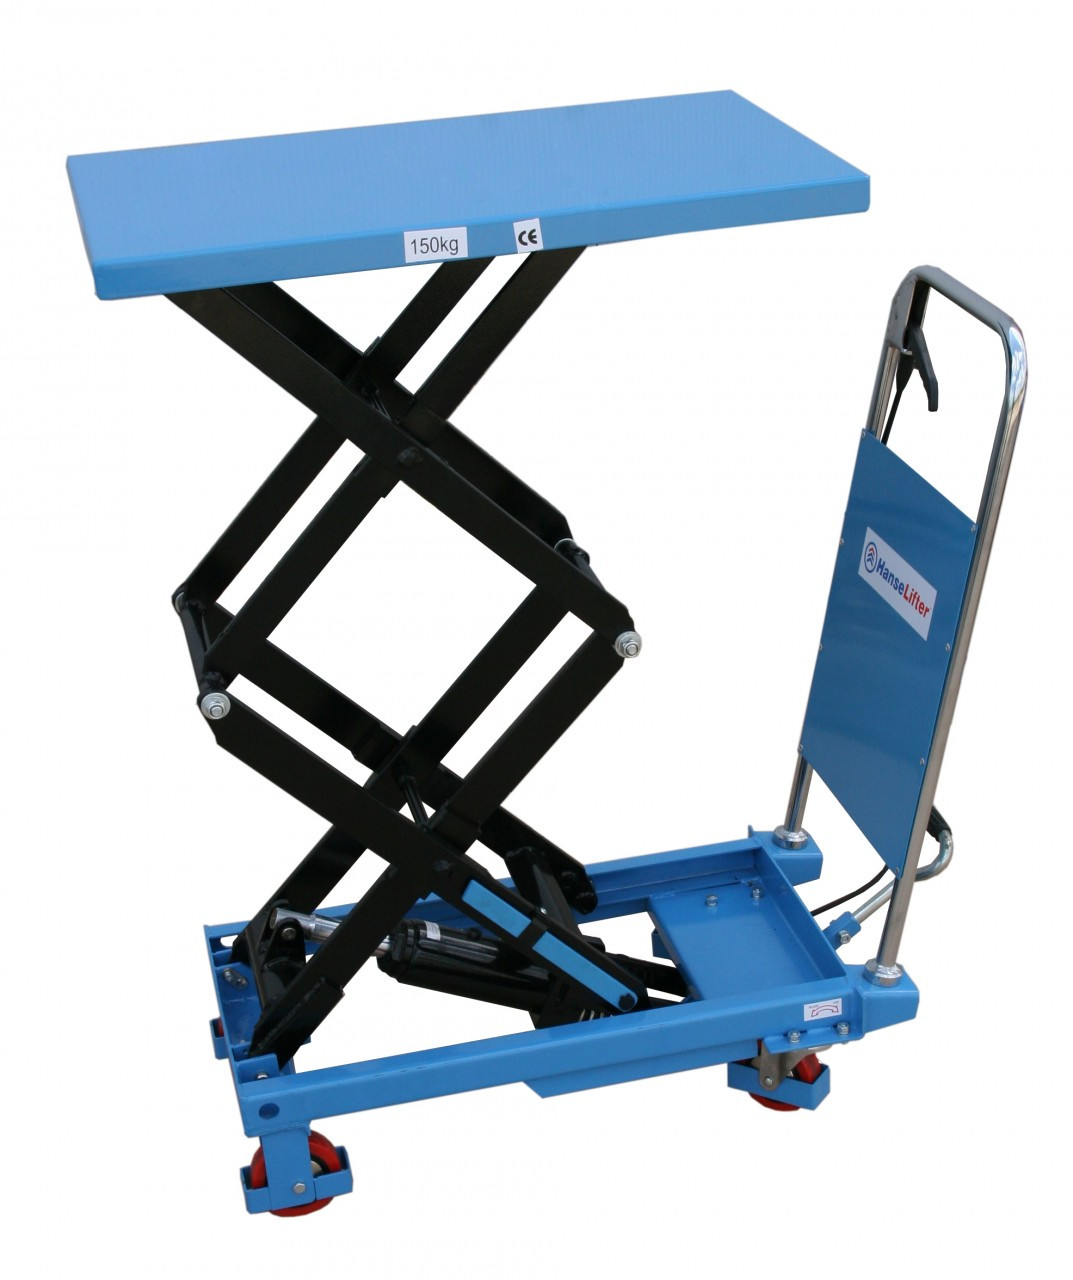 2 Ton Walk Behind Pallet Stacker Electric Forklift Price 1: Double Scissor Lift Table Lifting Up To 150kg